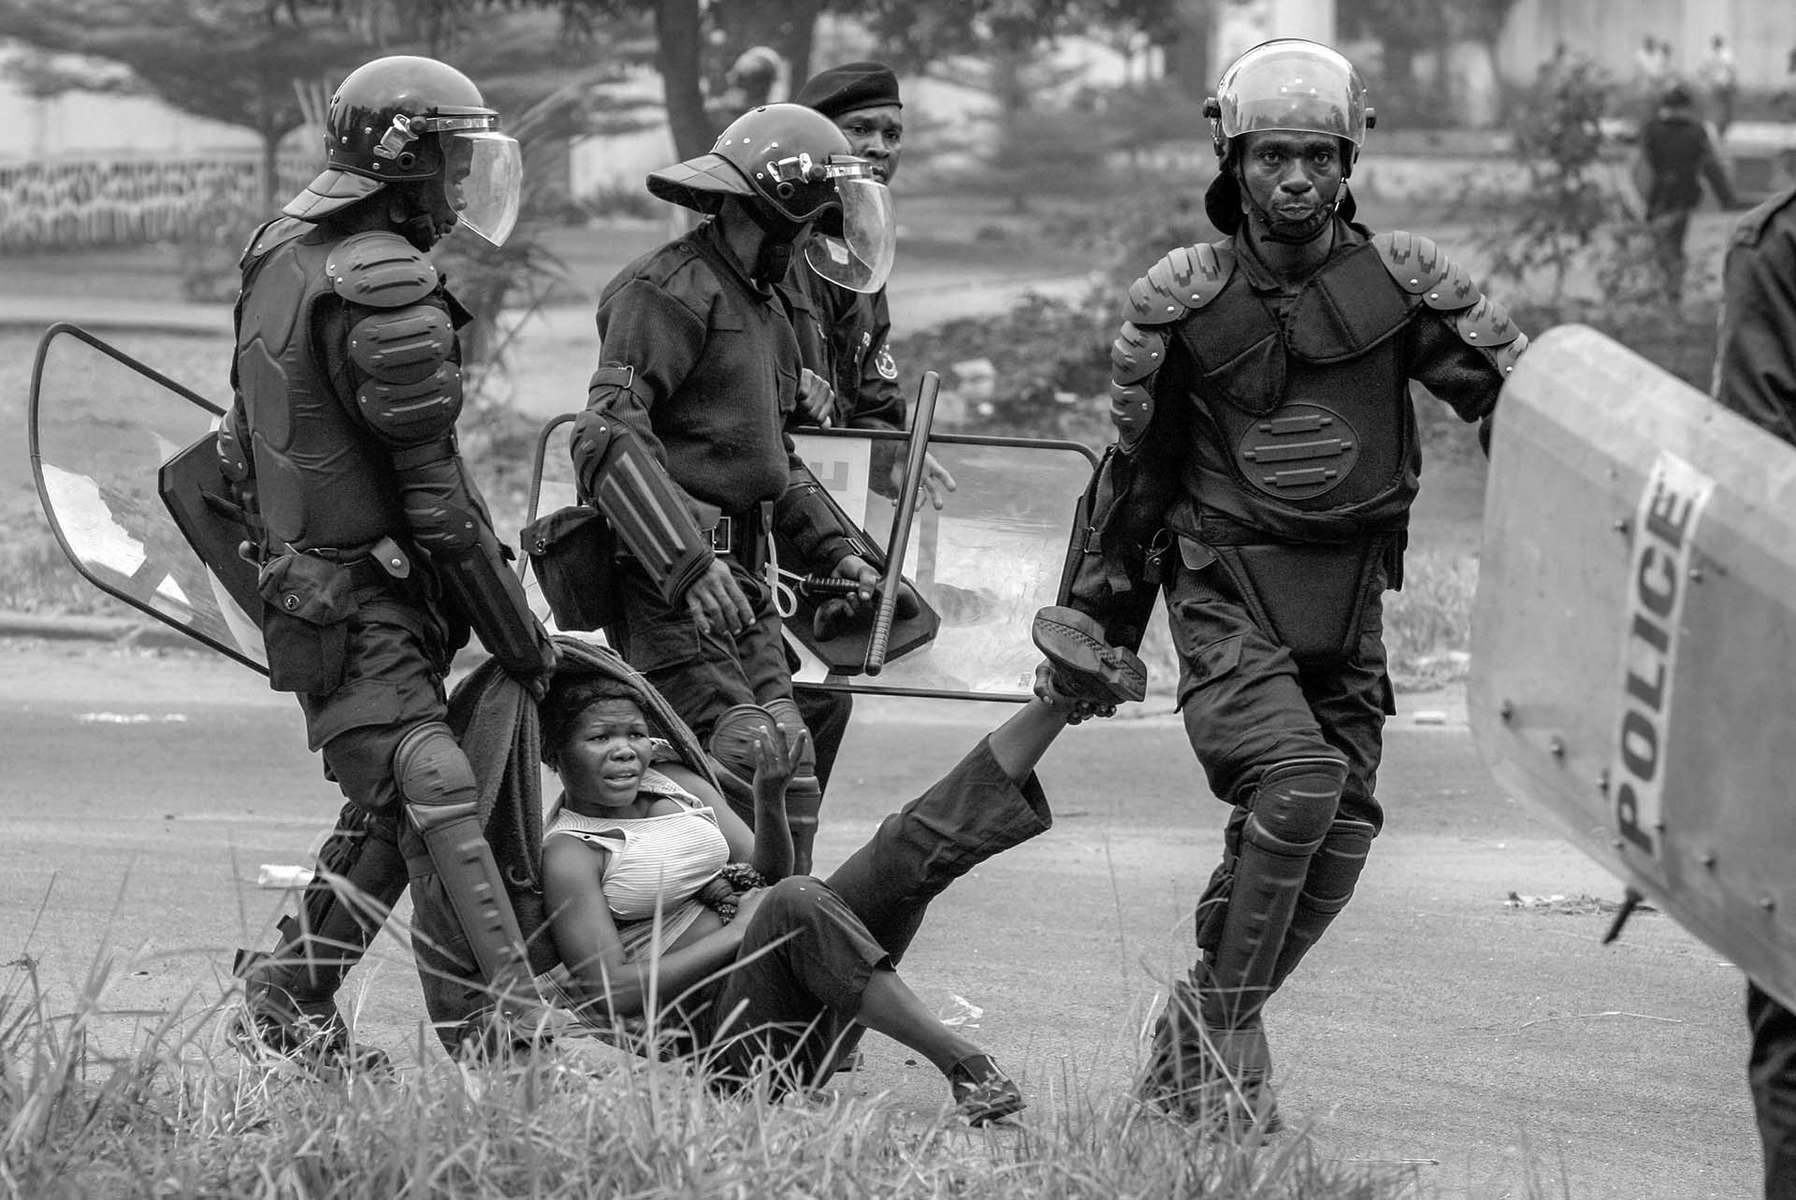 Riot police arrest a supporter of UDPS, Congo's main opposition party which boycotted the upcoming Presidential and National election, on the street of Kinshasa June 30, 2006, the nation's independence day.